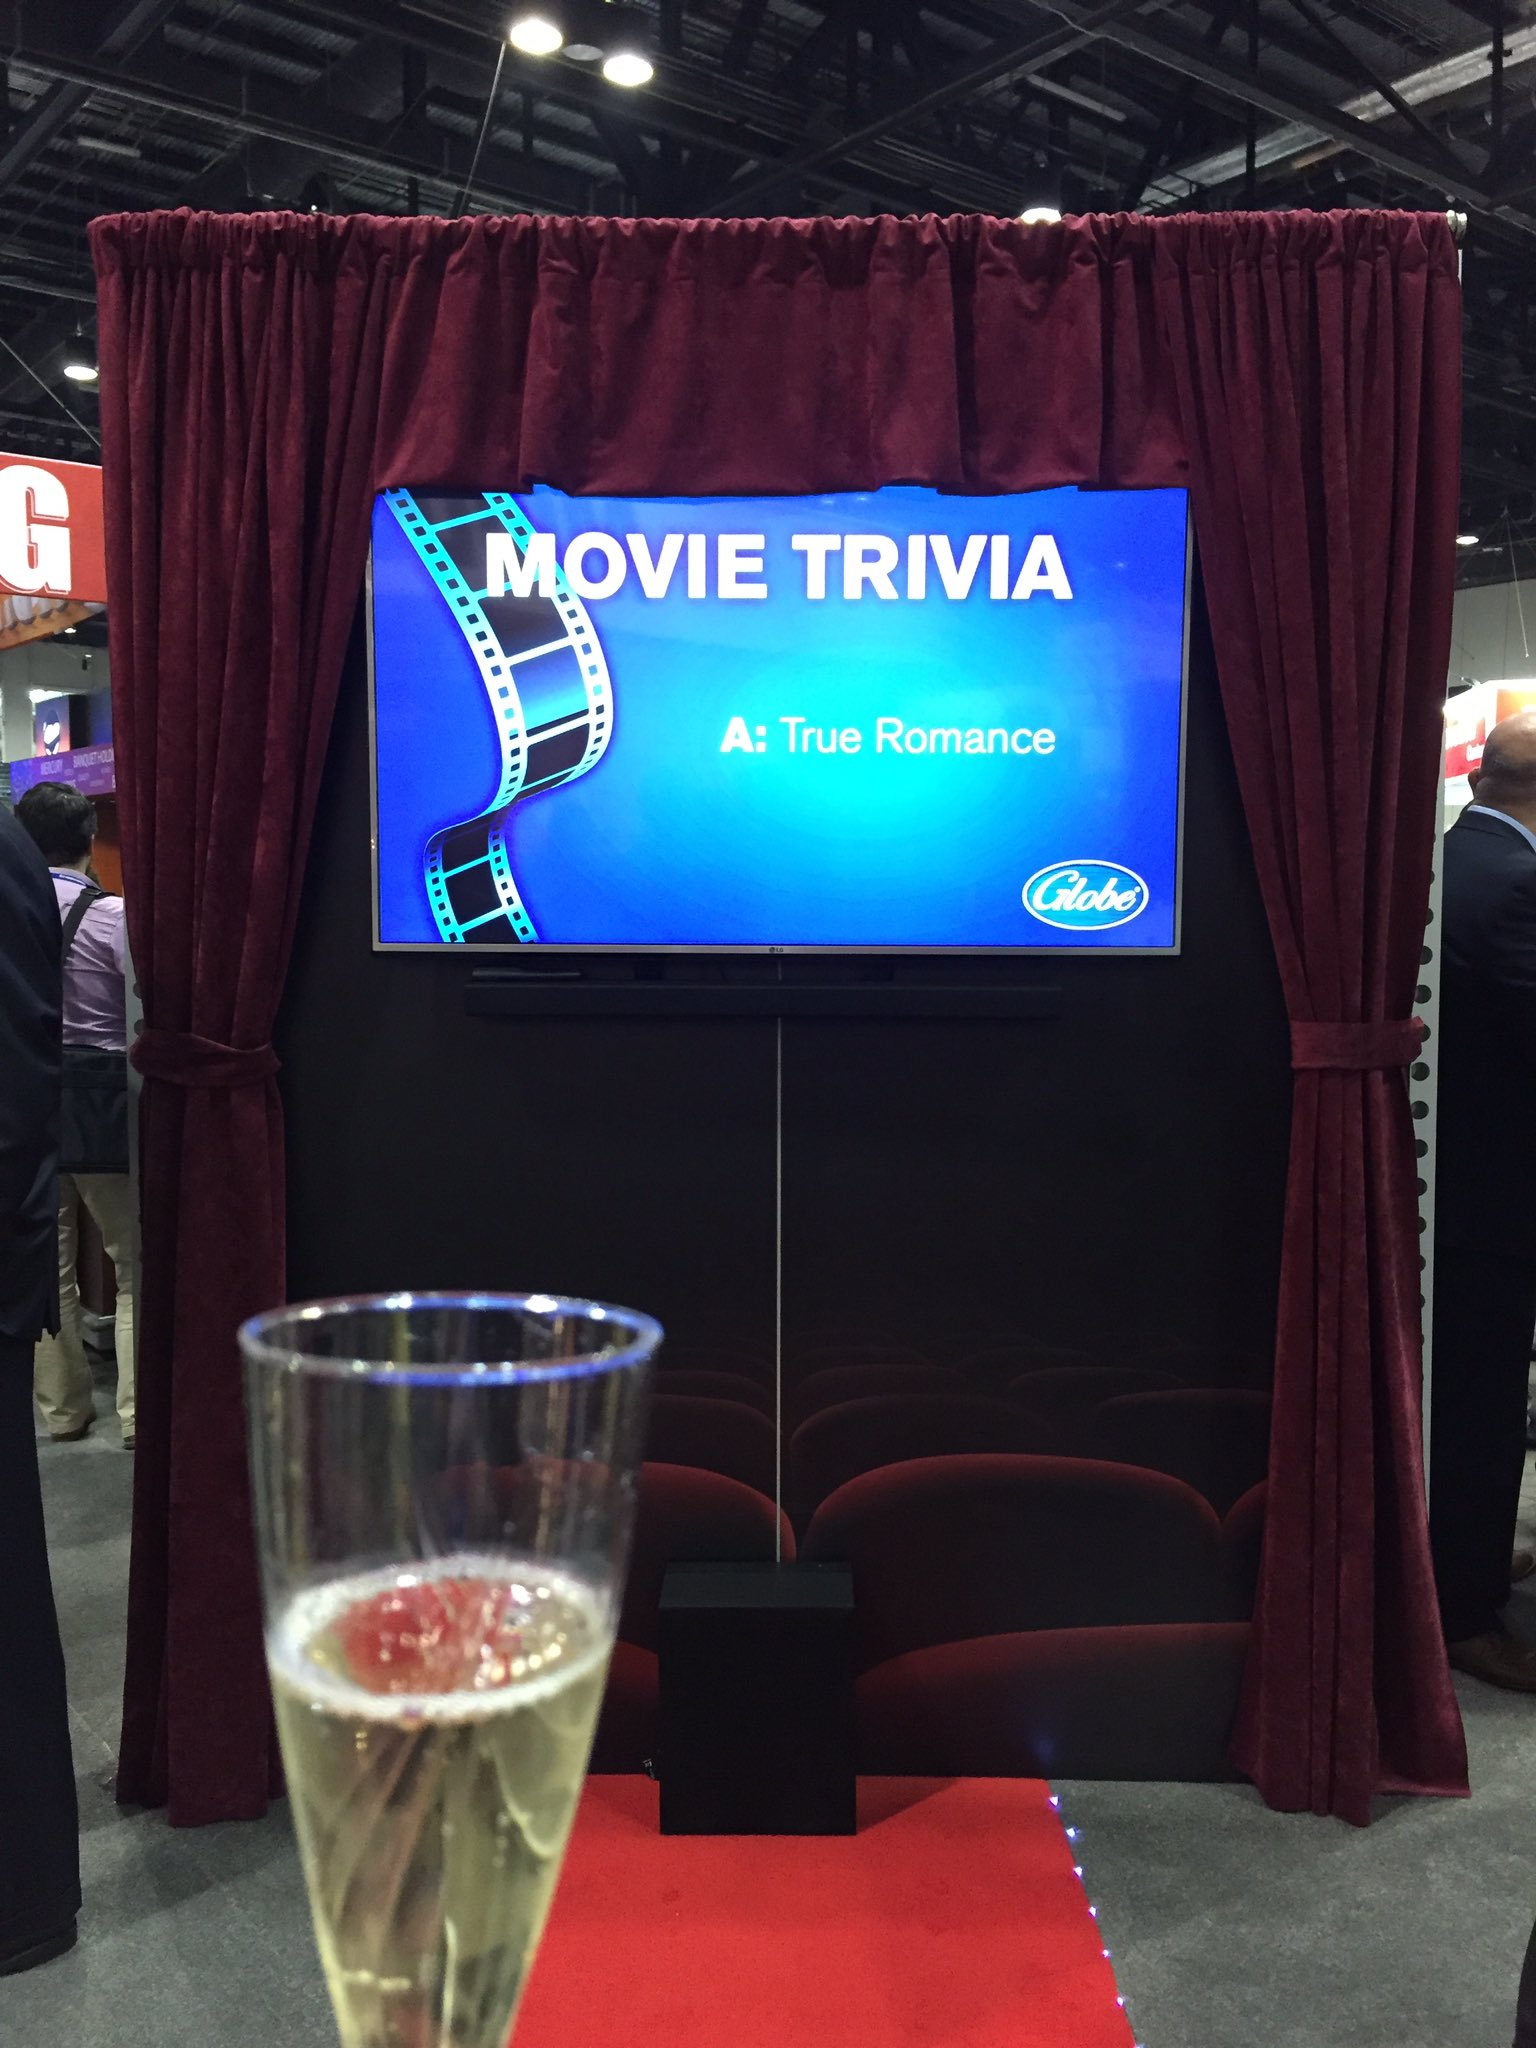 We had champs at the Globe booth on their red carpet at #TheNAFEMShow today! #ChampsIsOurFavorite https://t.co/hCZ3G6niaN